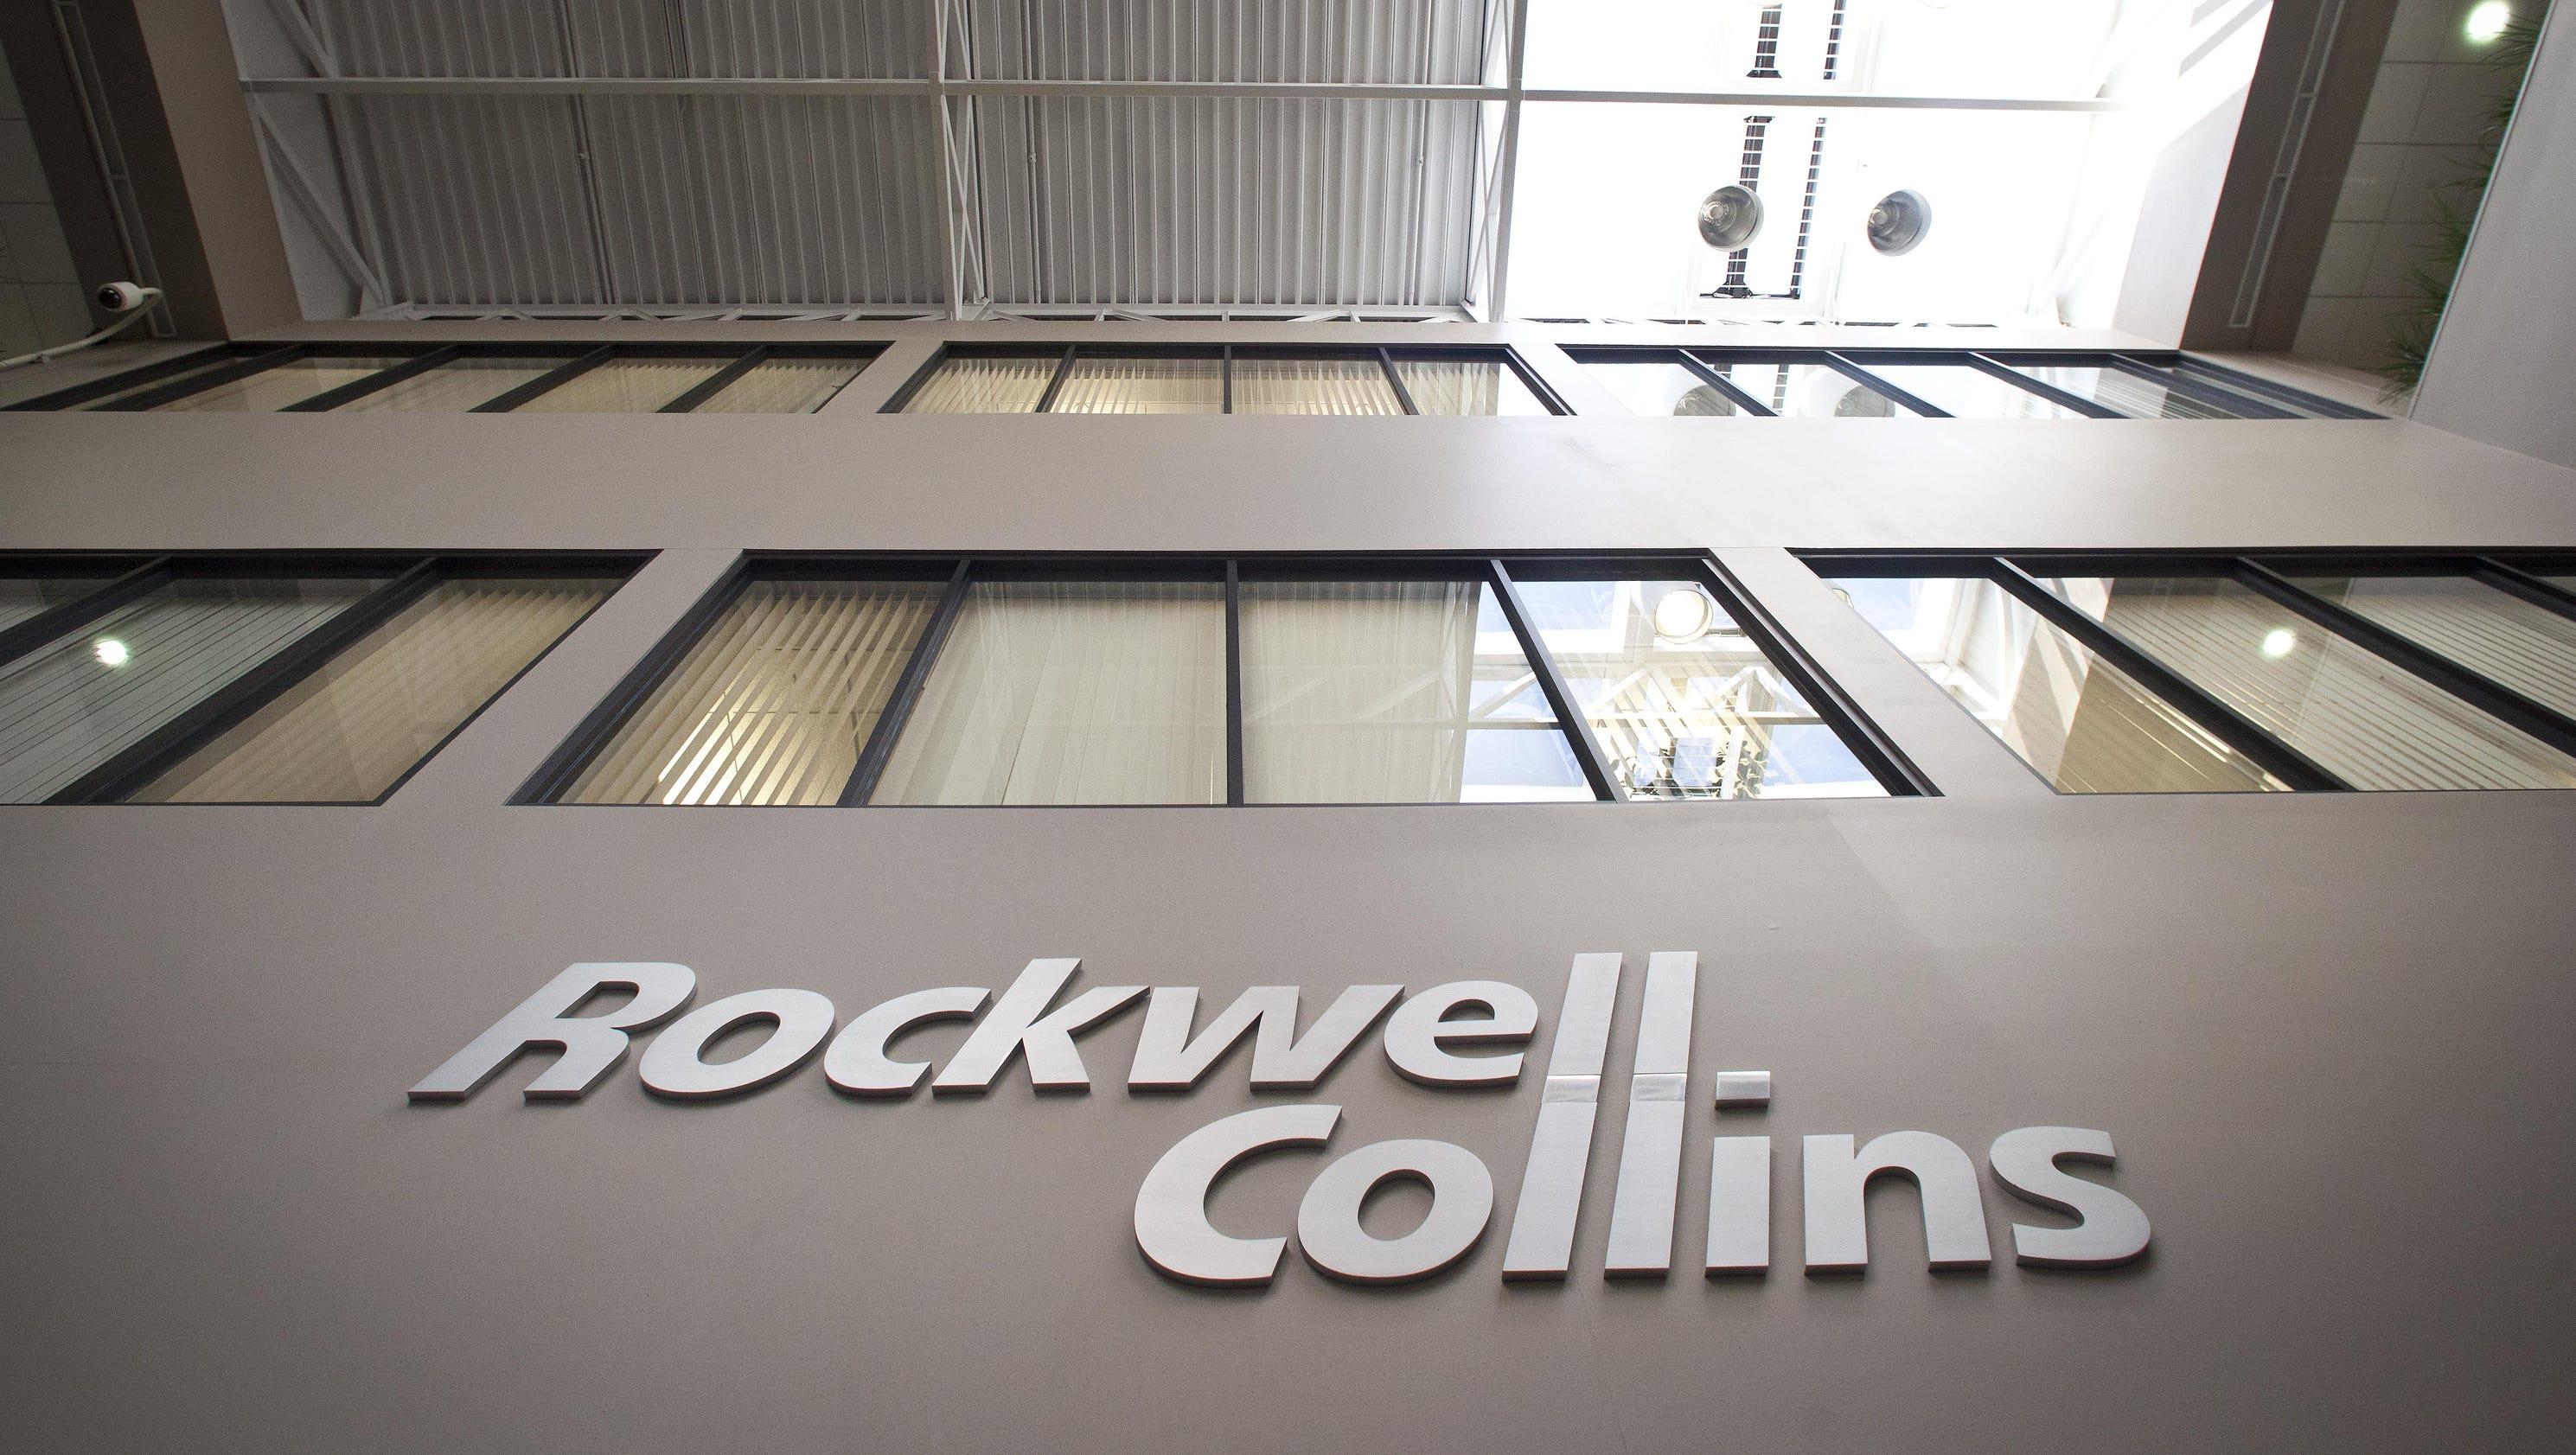 Rockwell Collins buys Florida aerospace firm for $6.4 billion